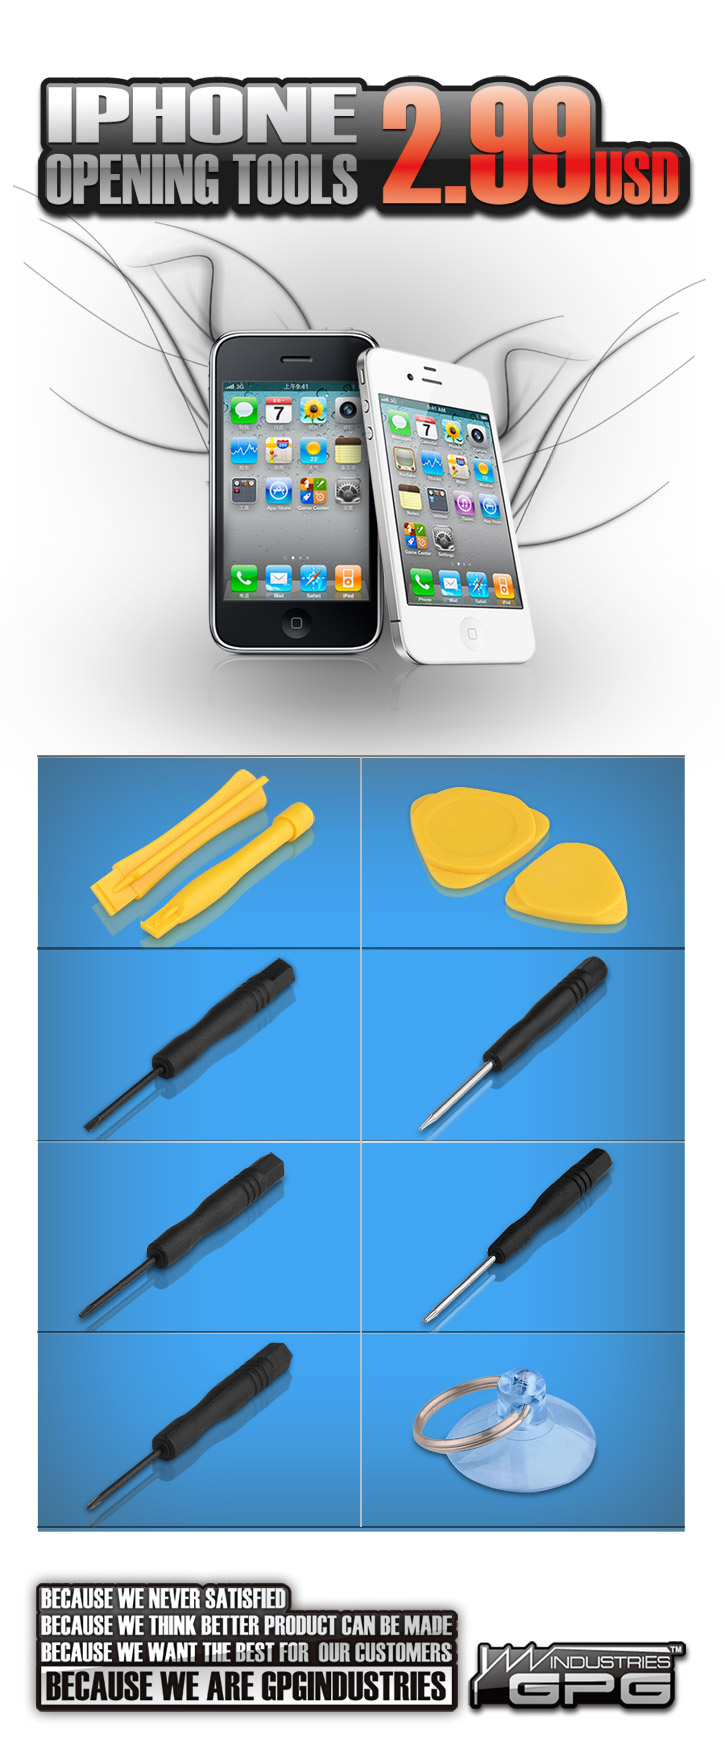 2011 05 13 IPHONE OPENING TOOLS 725